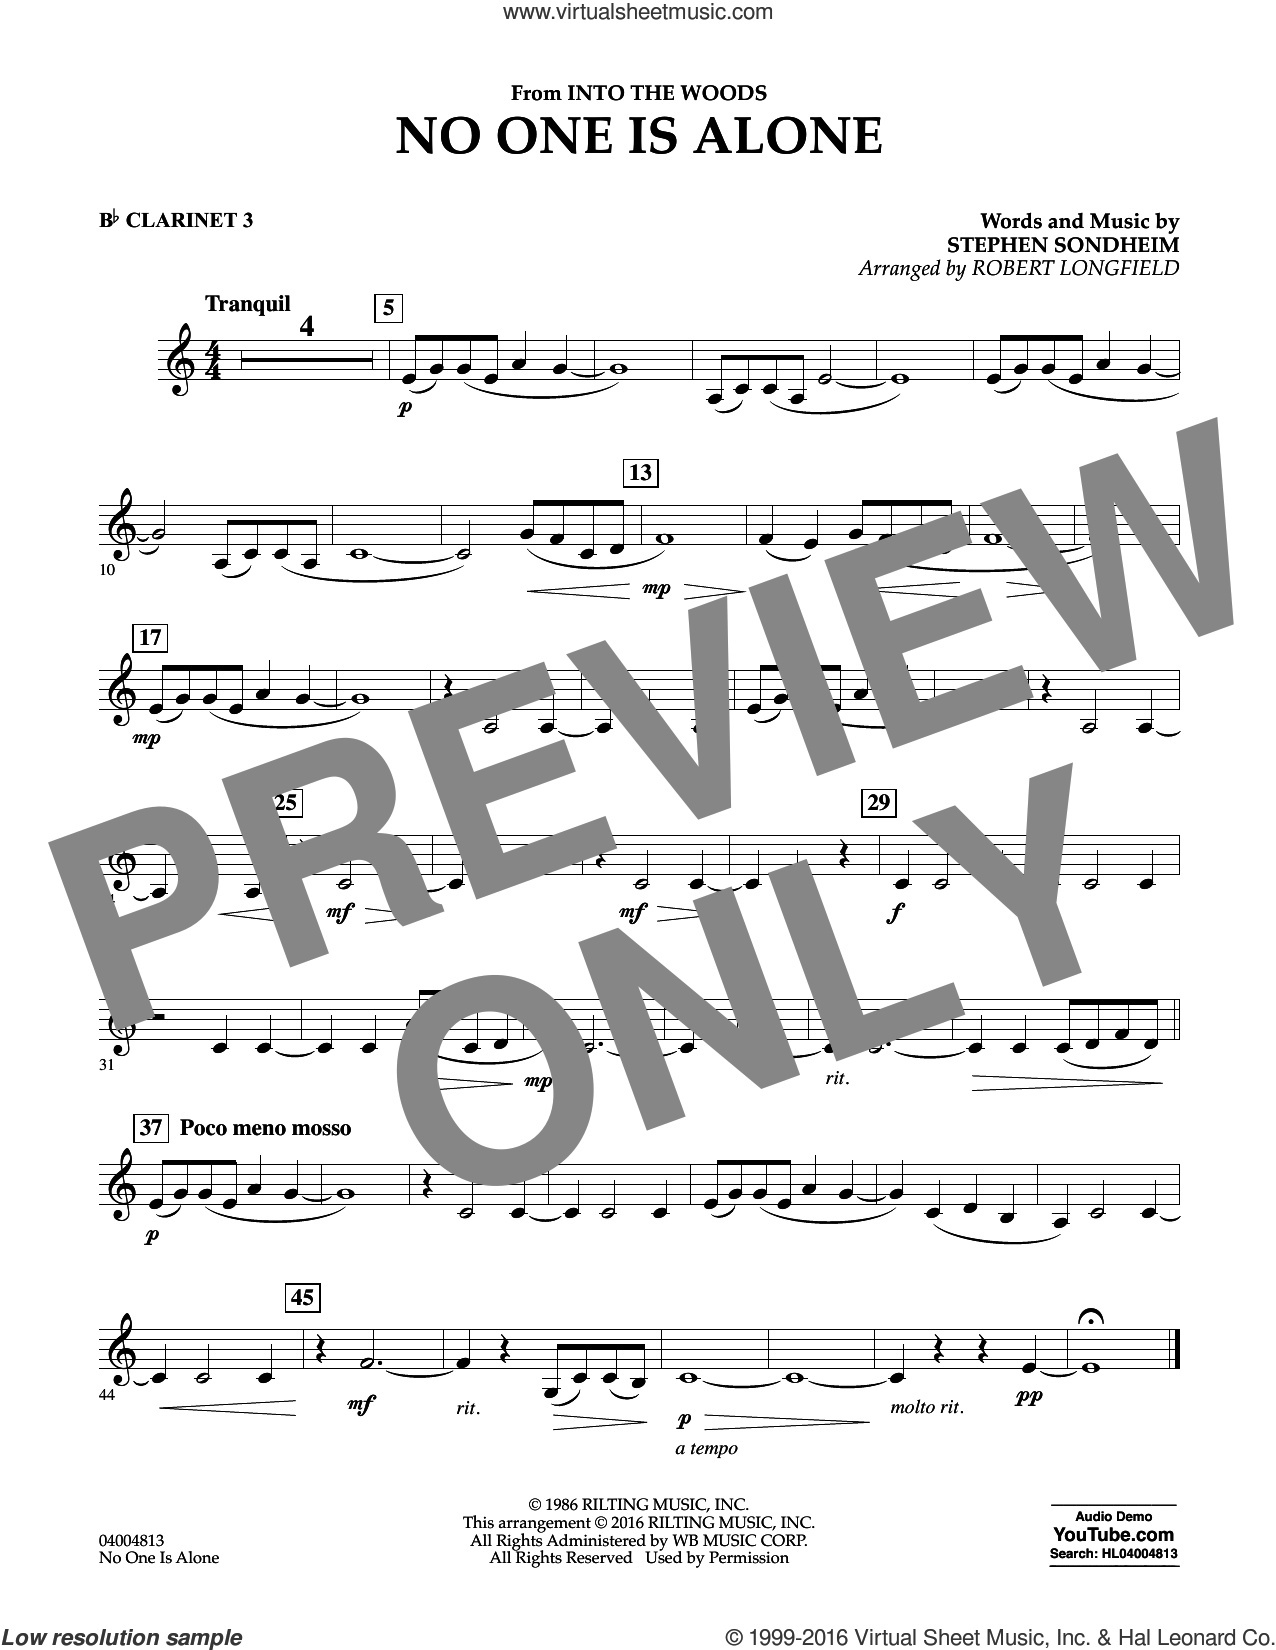 No One Is Alone sheet music for concert band (Bb clarinet 3) by Stephen Sondheim and Robert Longfield, intermediate skill level